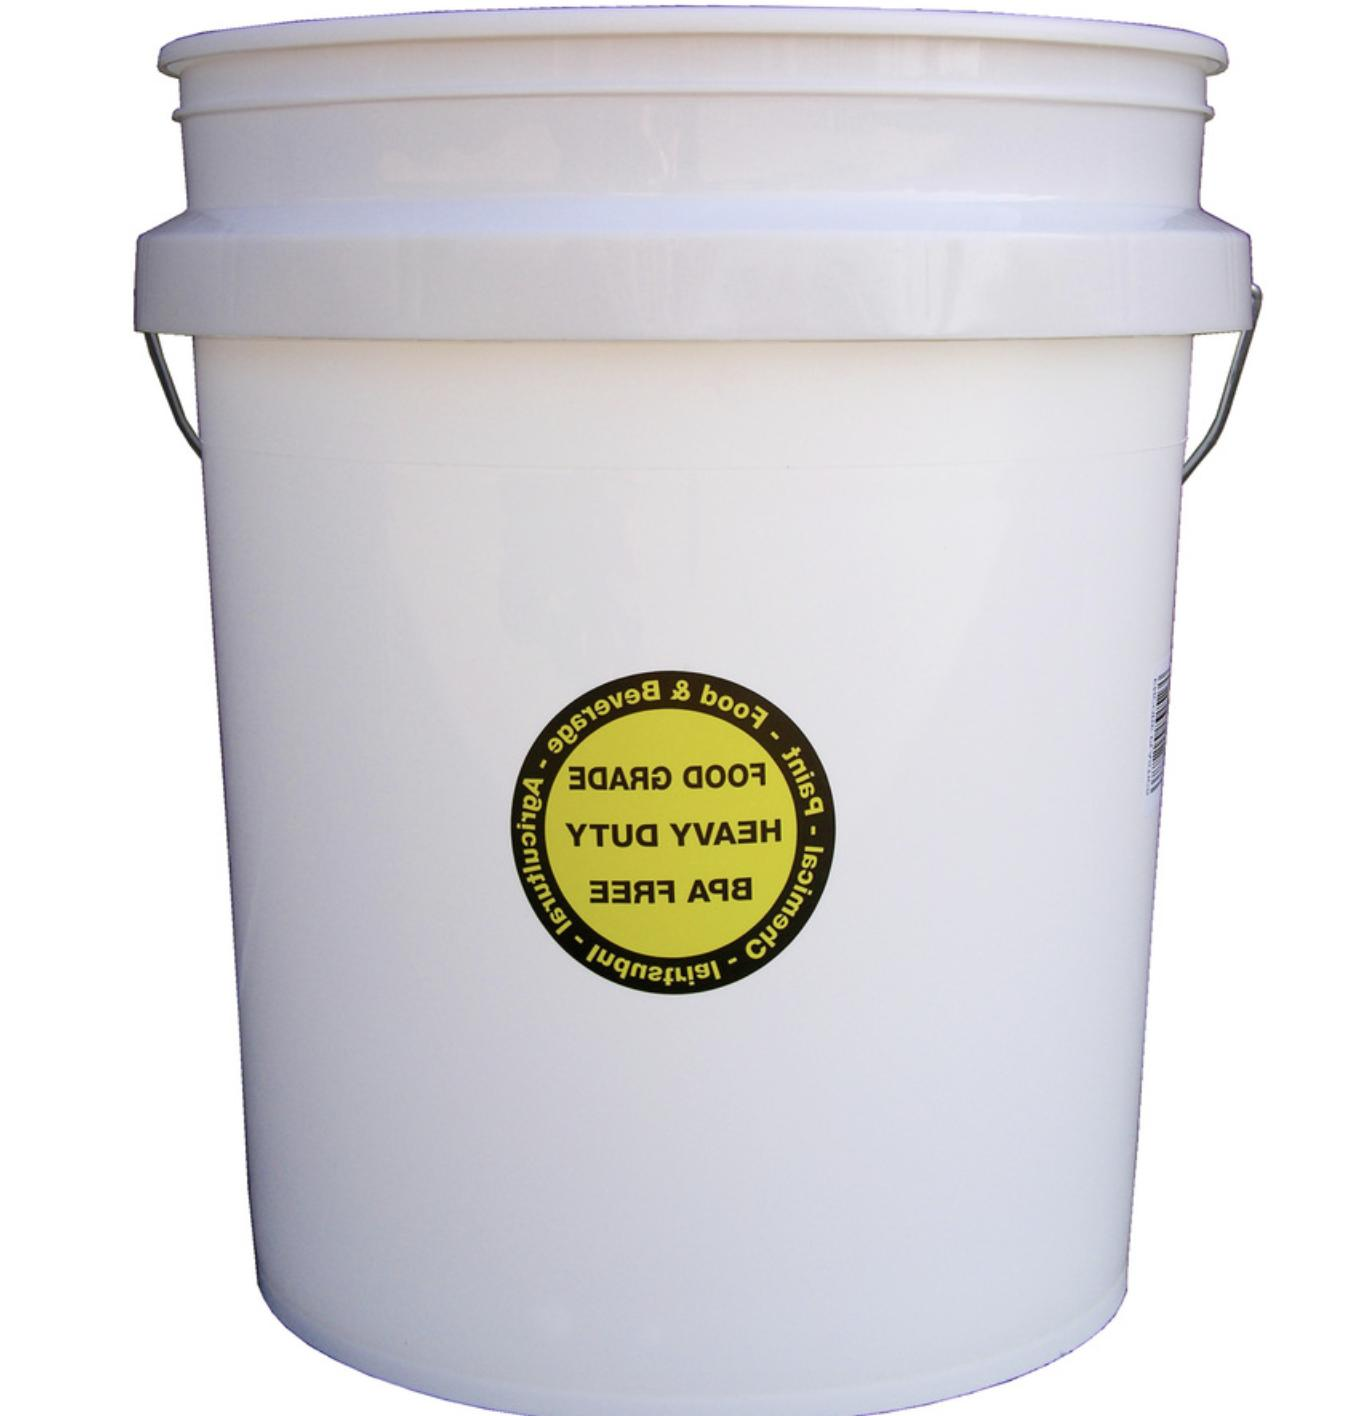 Lid FOOD COMMERCIAL Durable Purpose Paint Storage